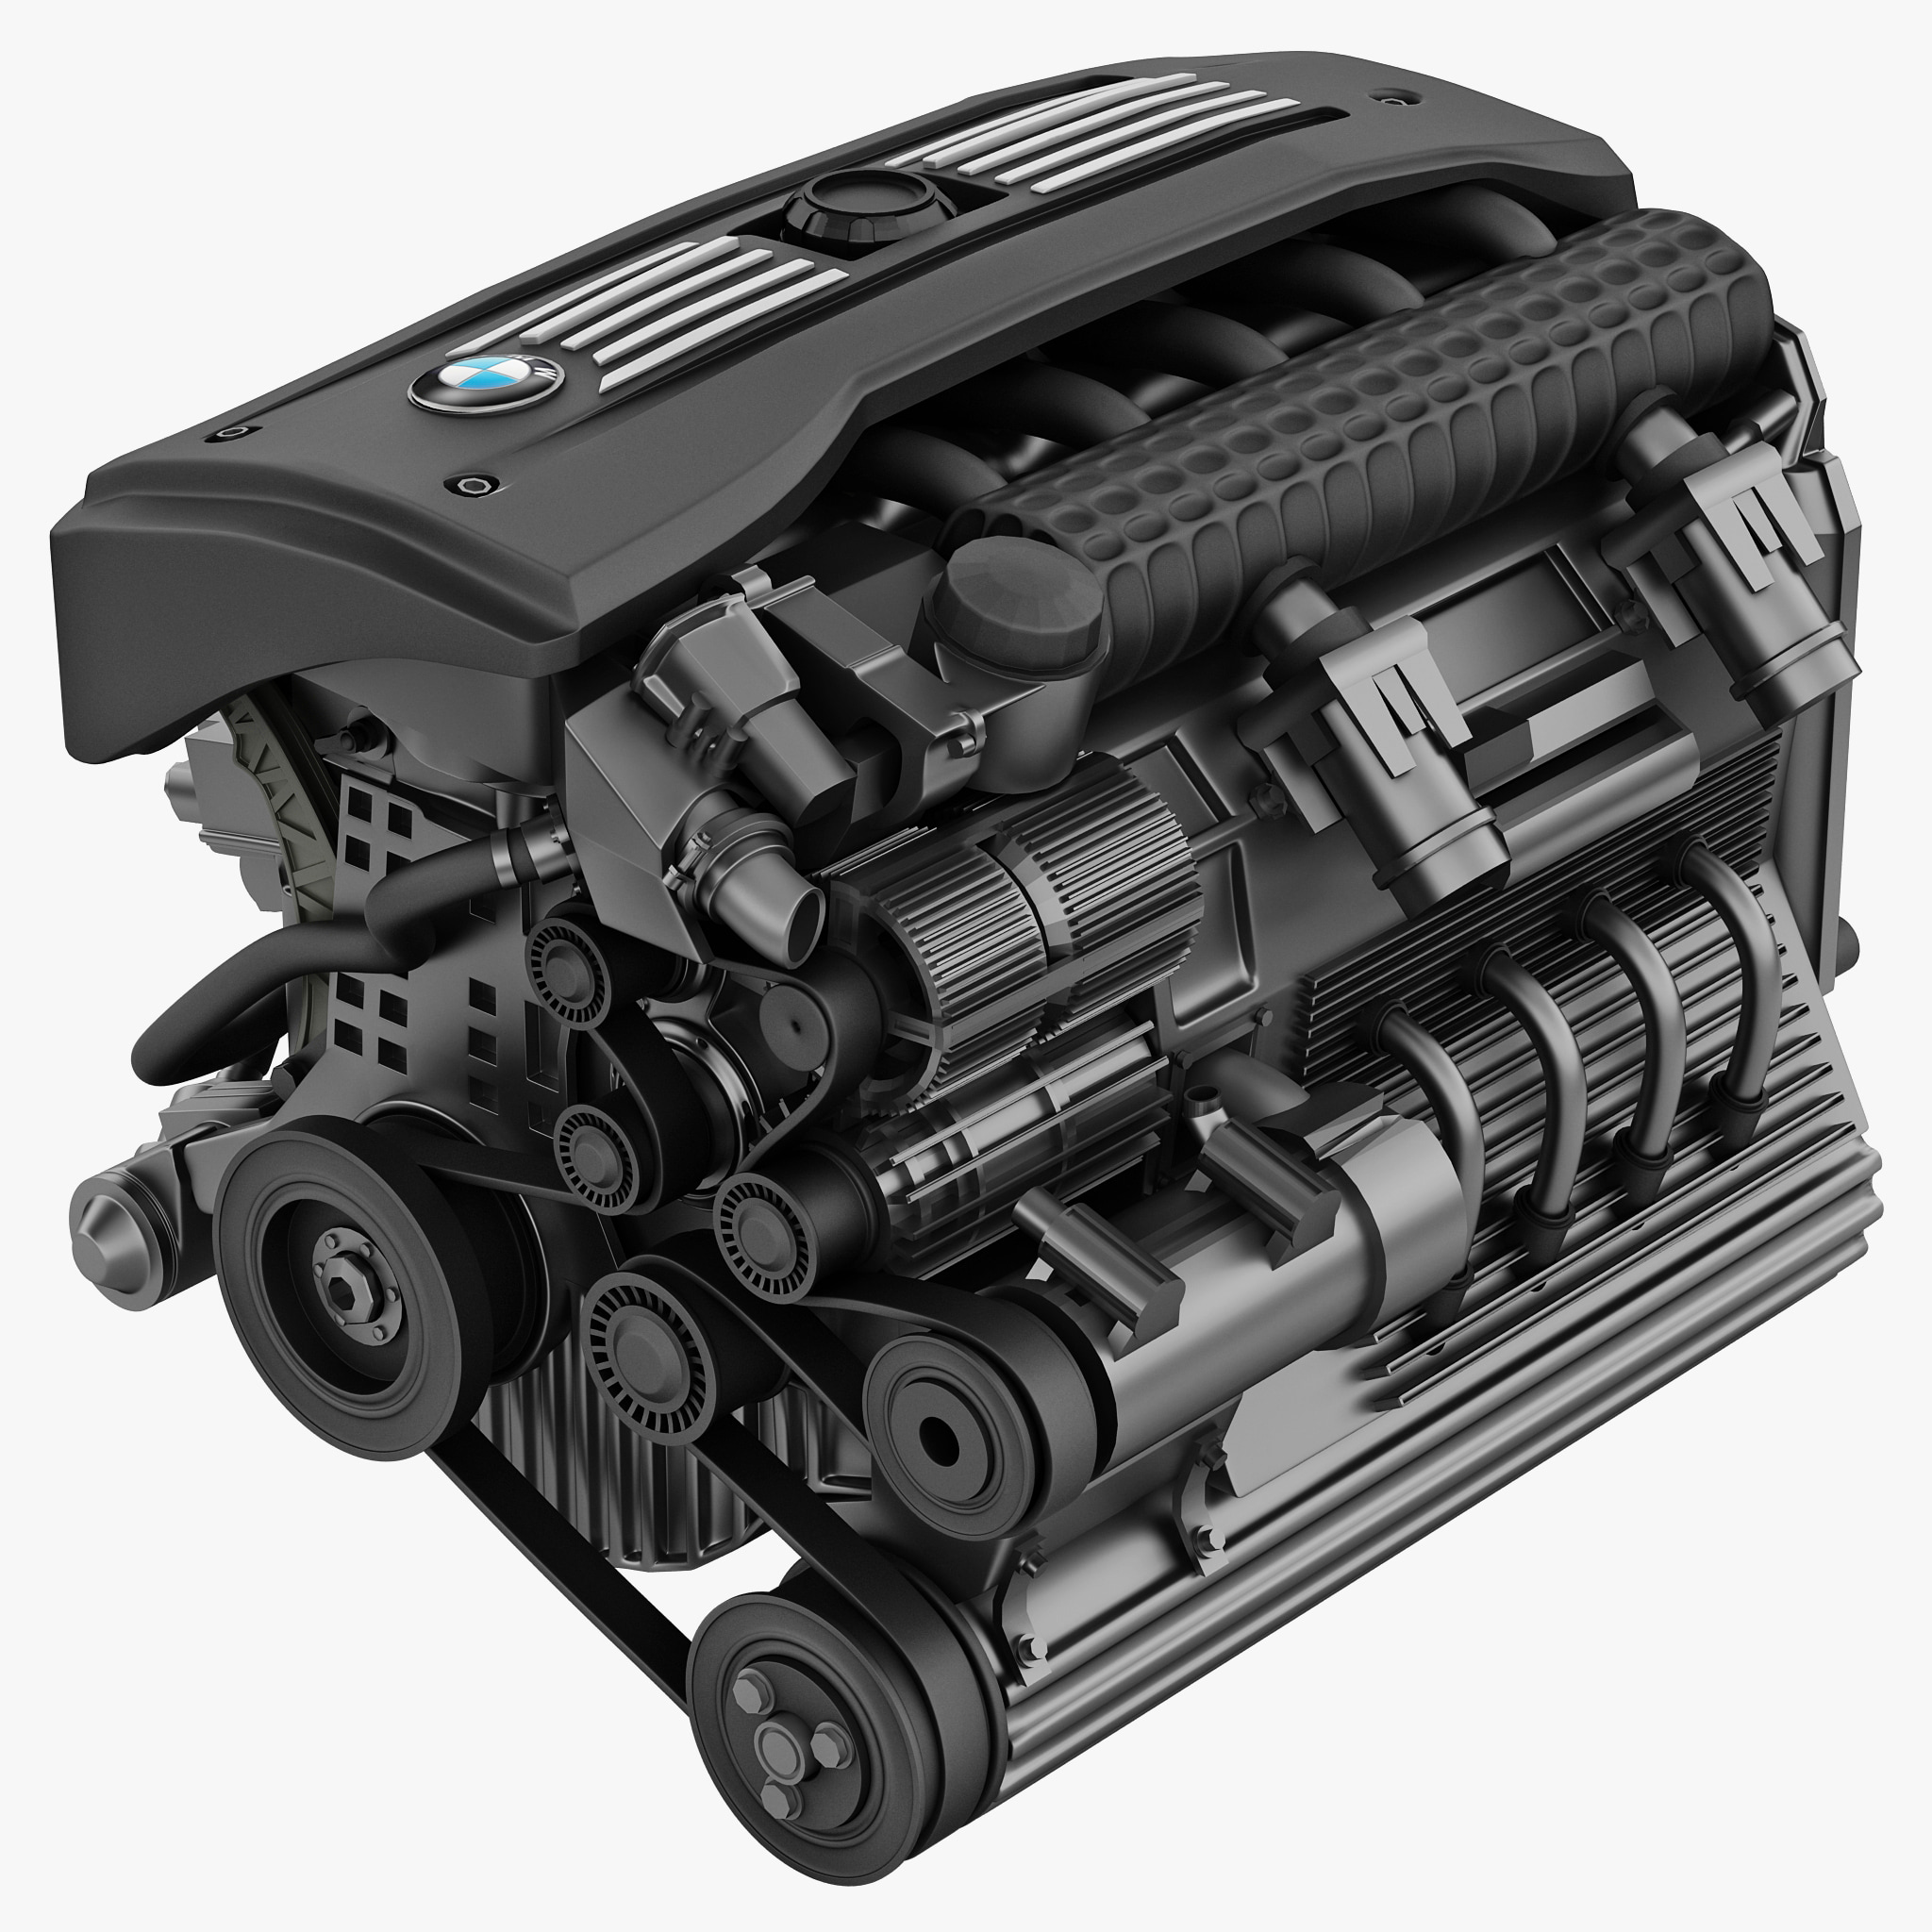 Bmw Car Engine_1.jpg